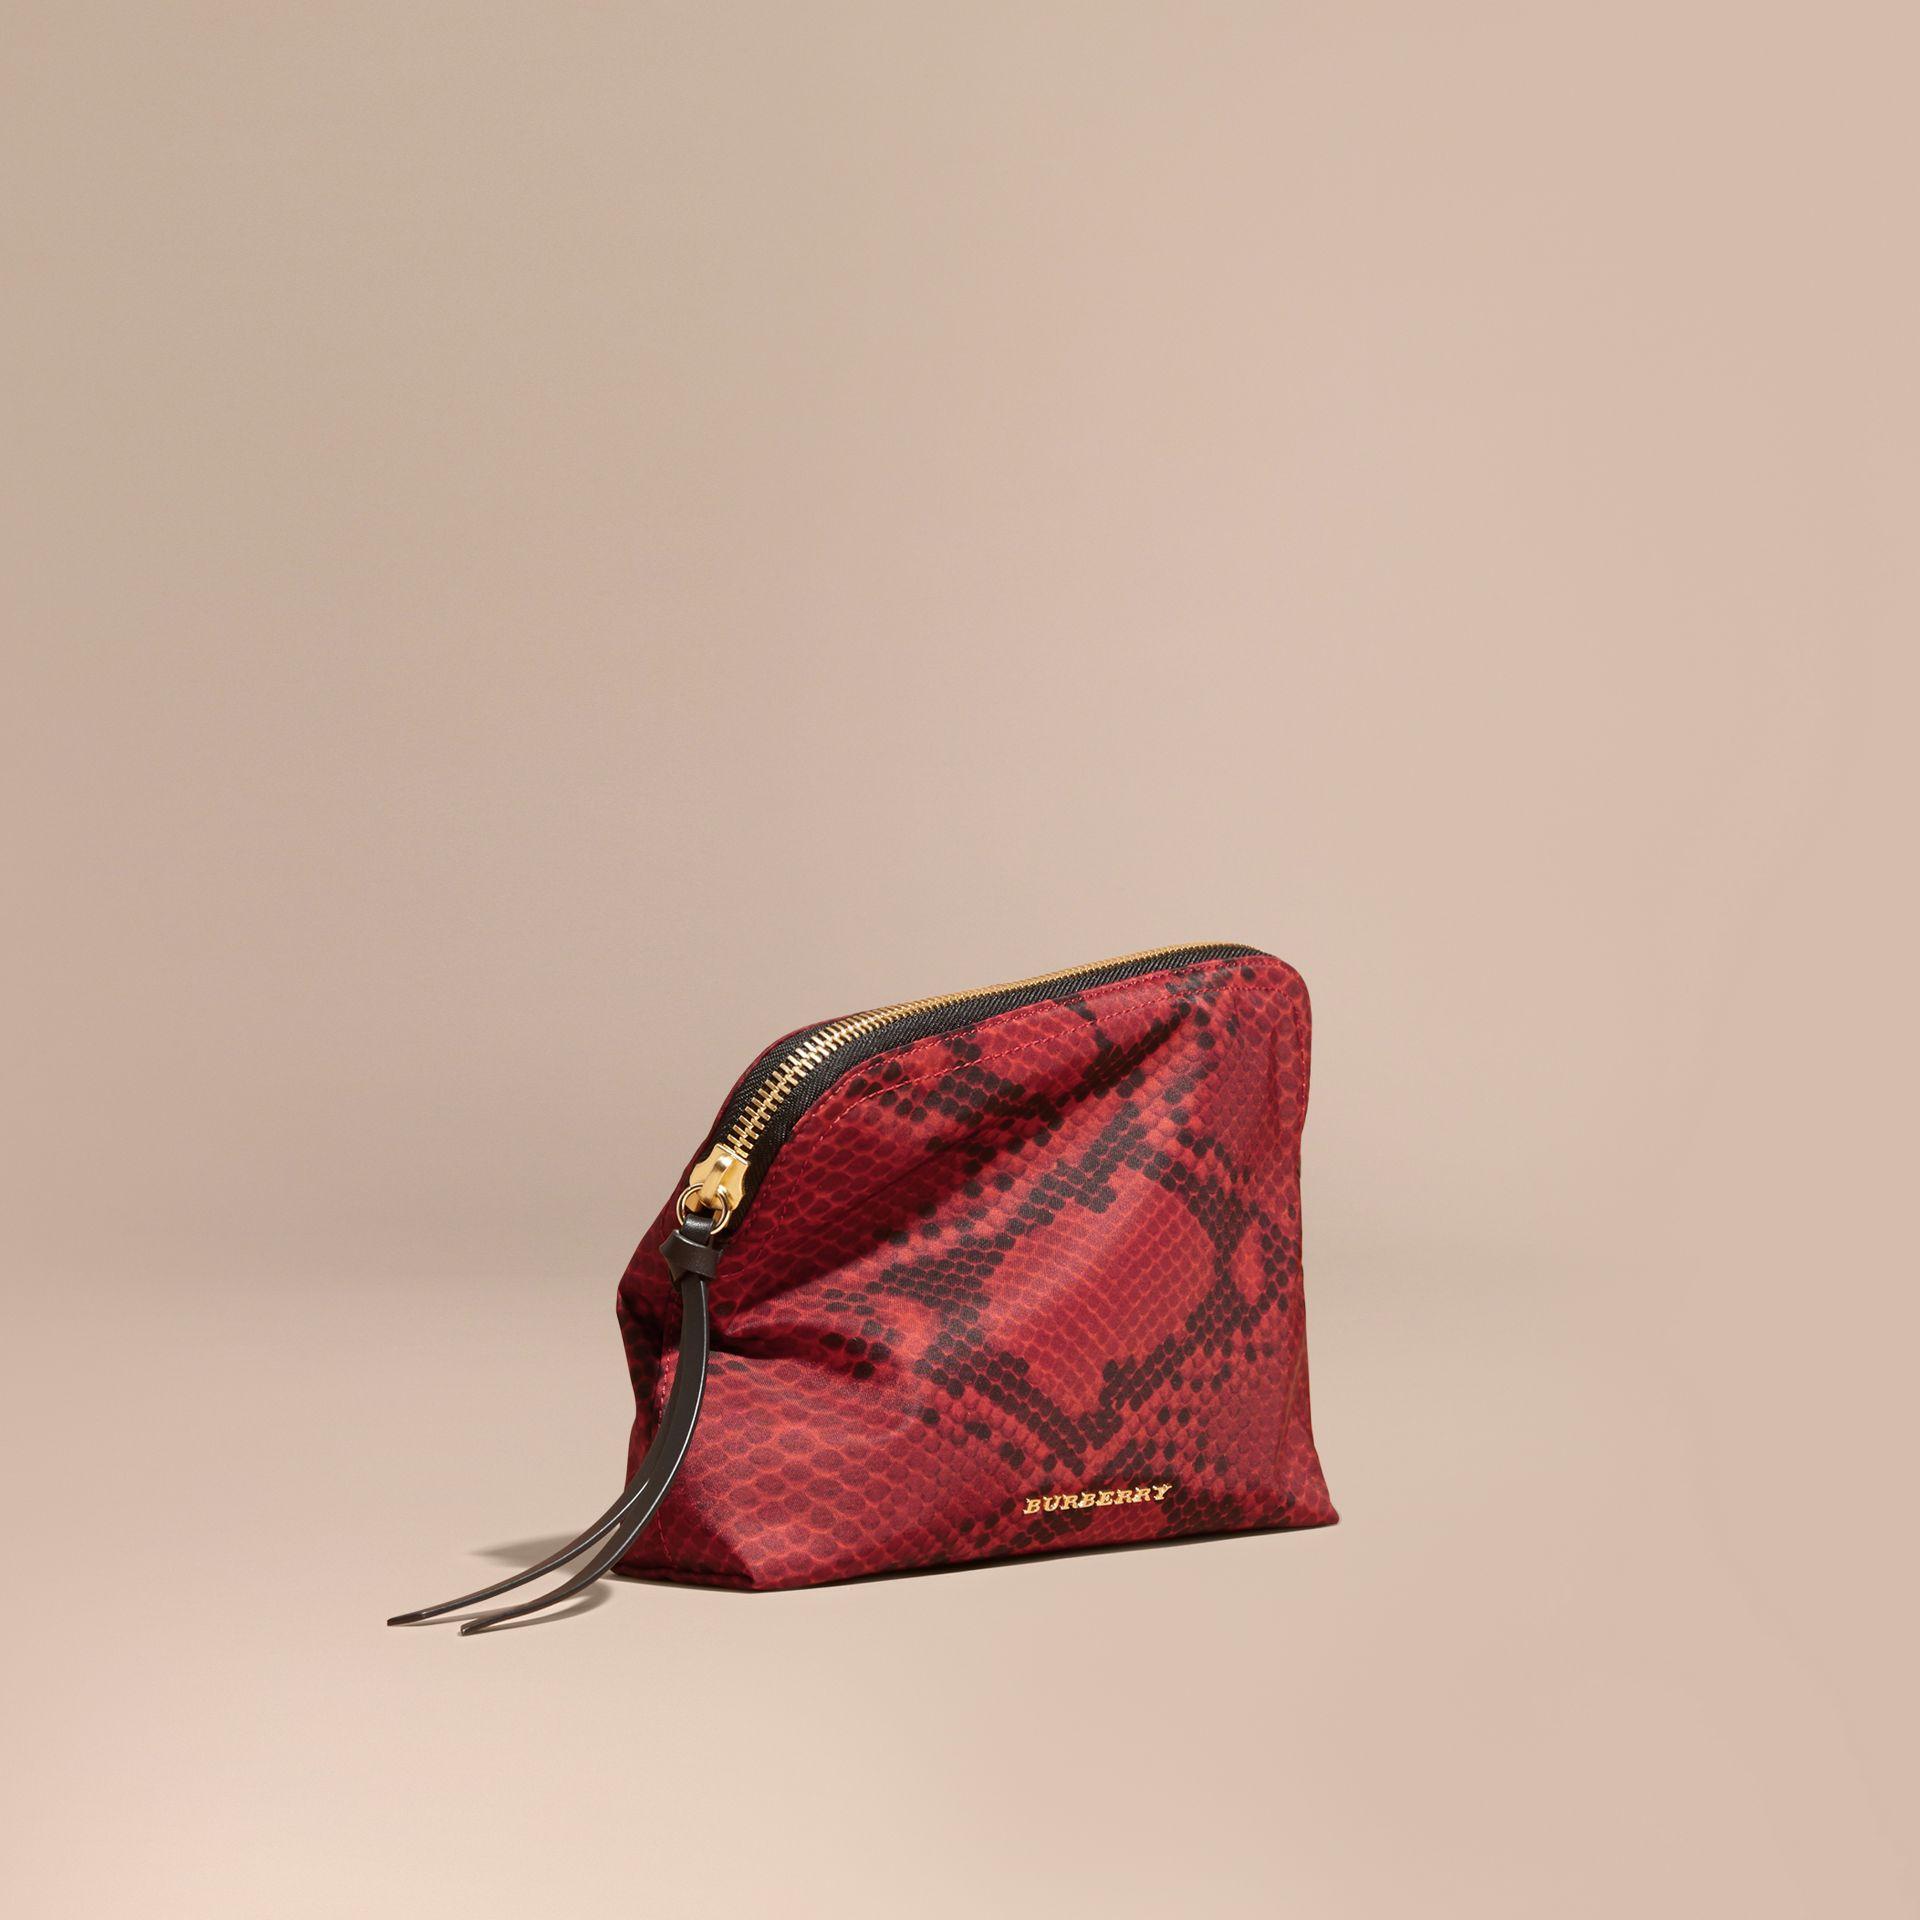 Burgundy red Large Zip-top Python-print Technical Nylon Pouch Burgundy Red - gallery image 1